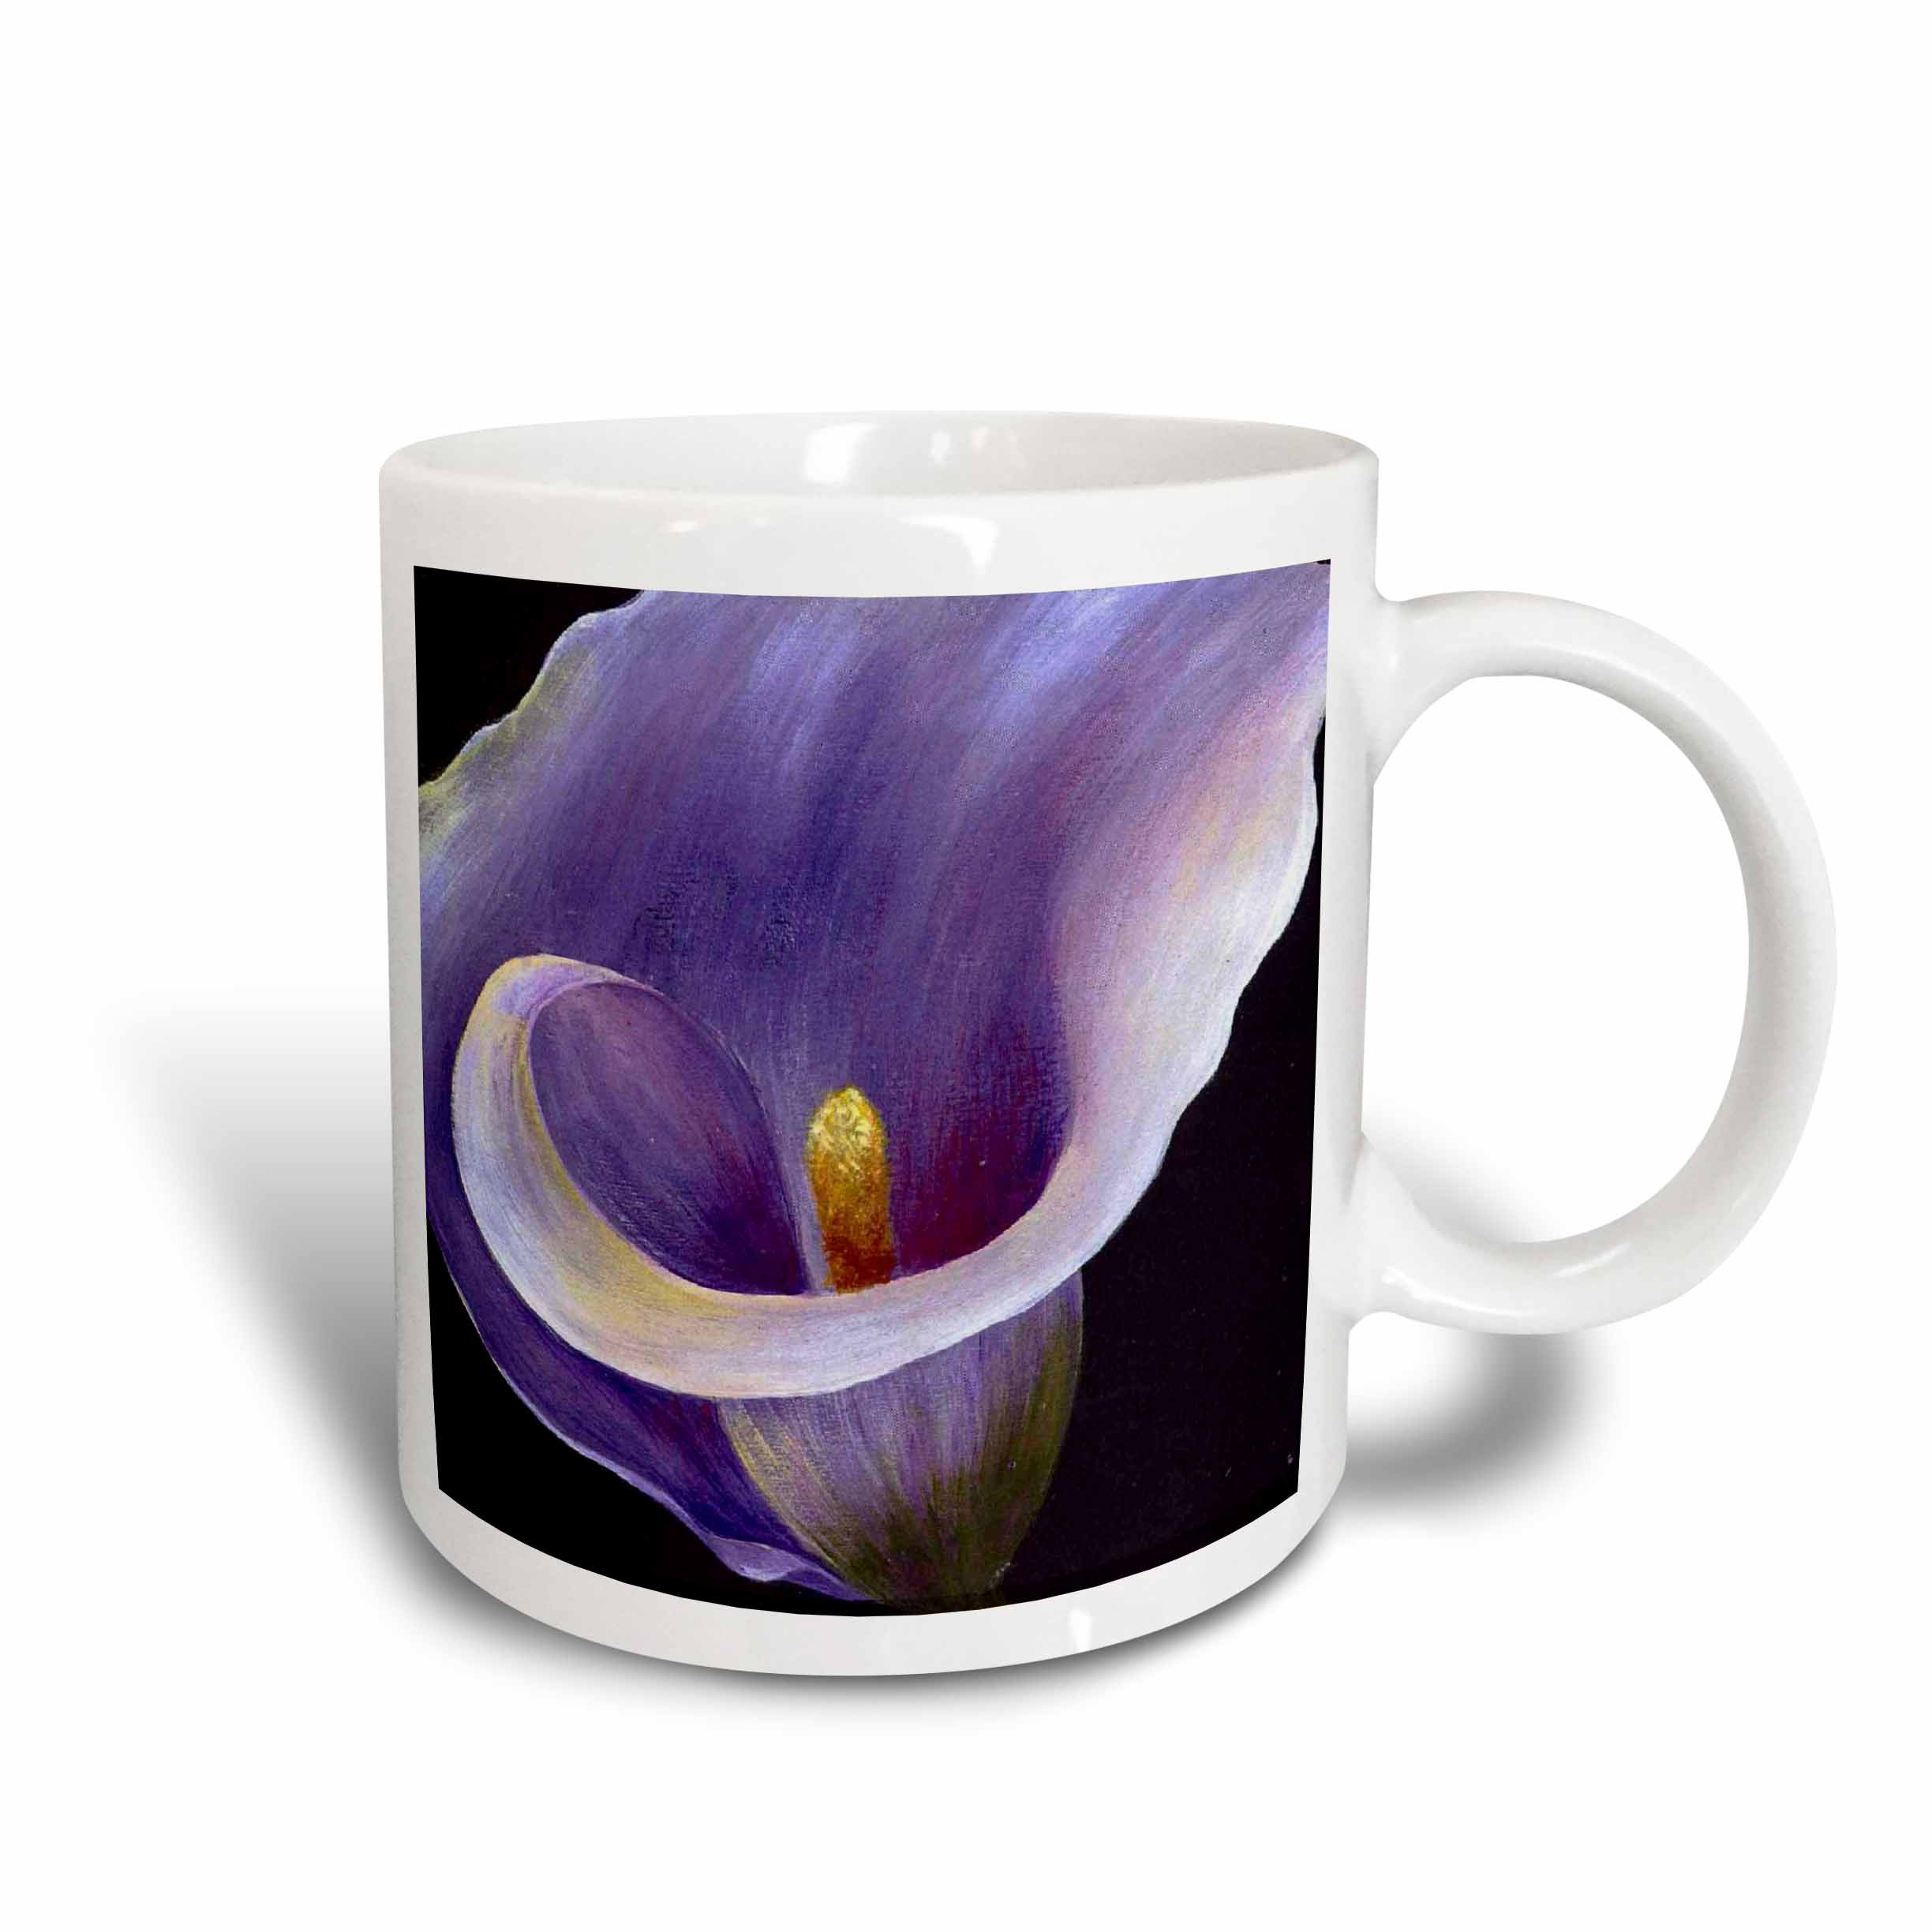 3dRose Purple Calla Lilies, Ceramic Mug, 15-ounce